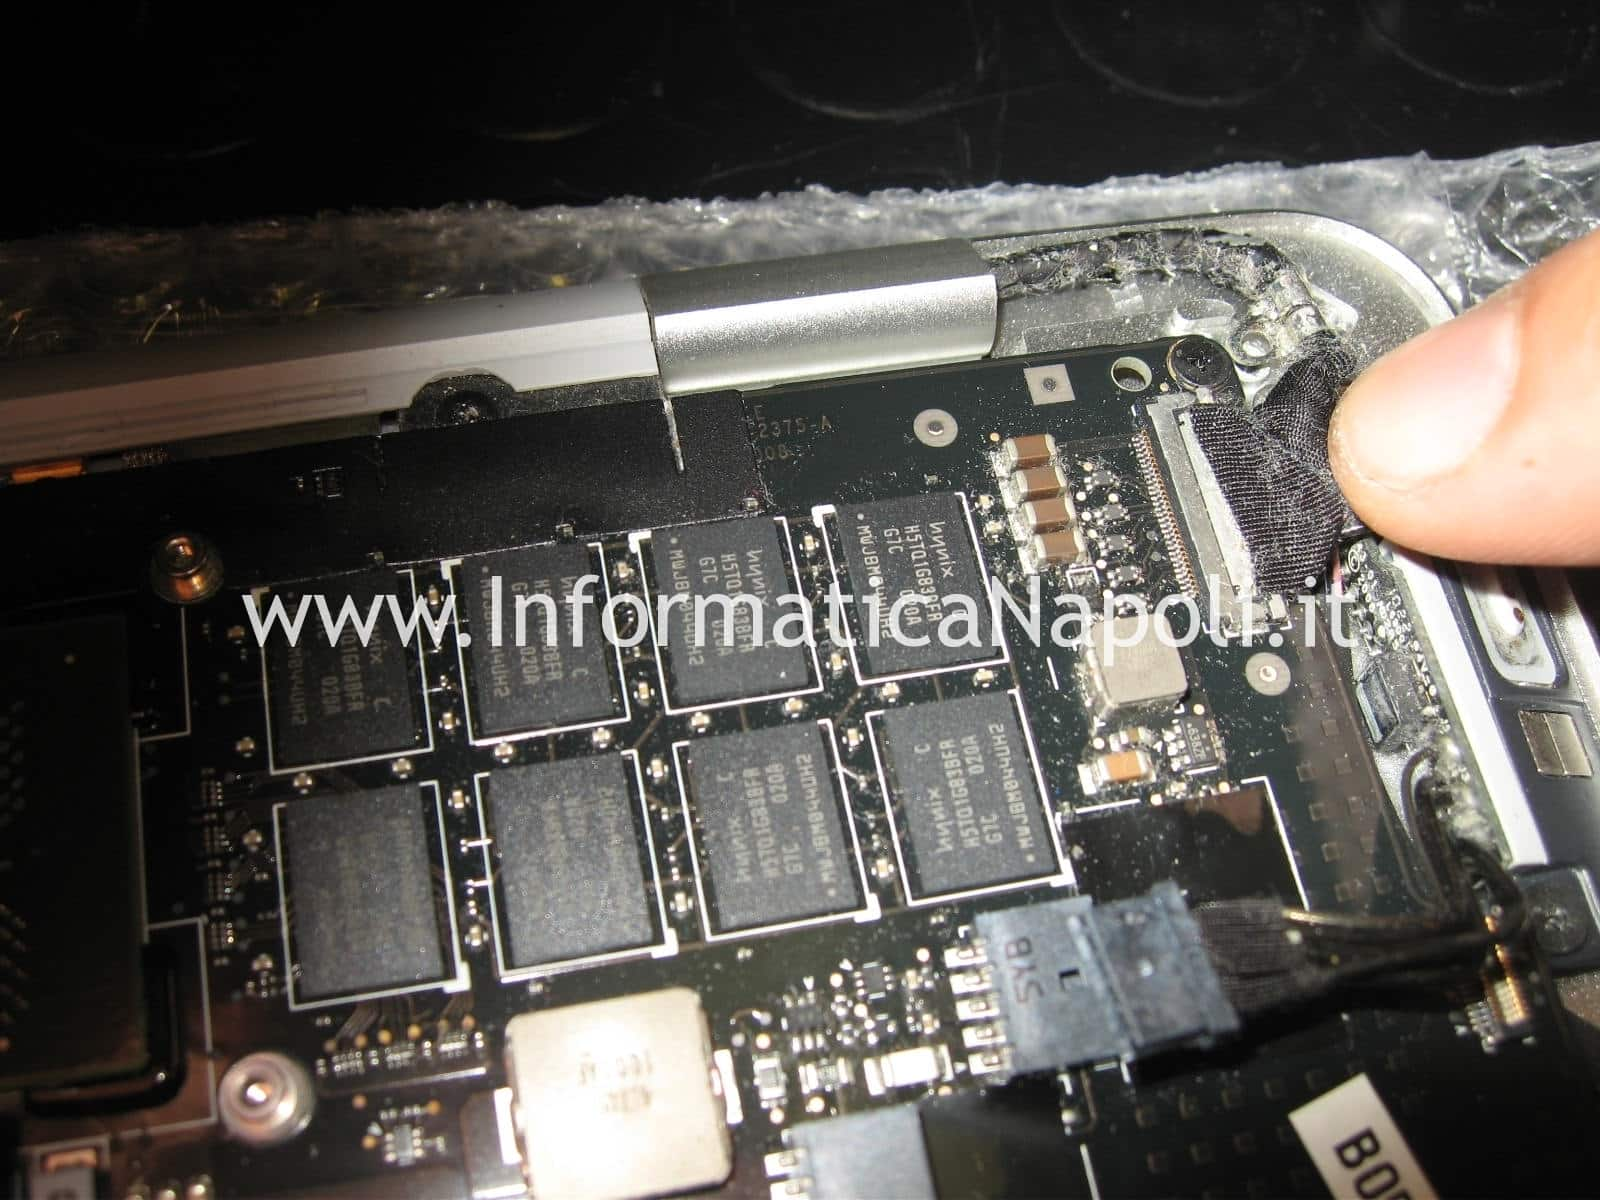 ram macbook air 13 A1237